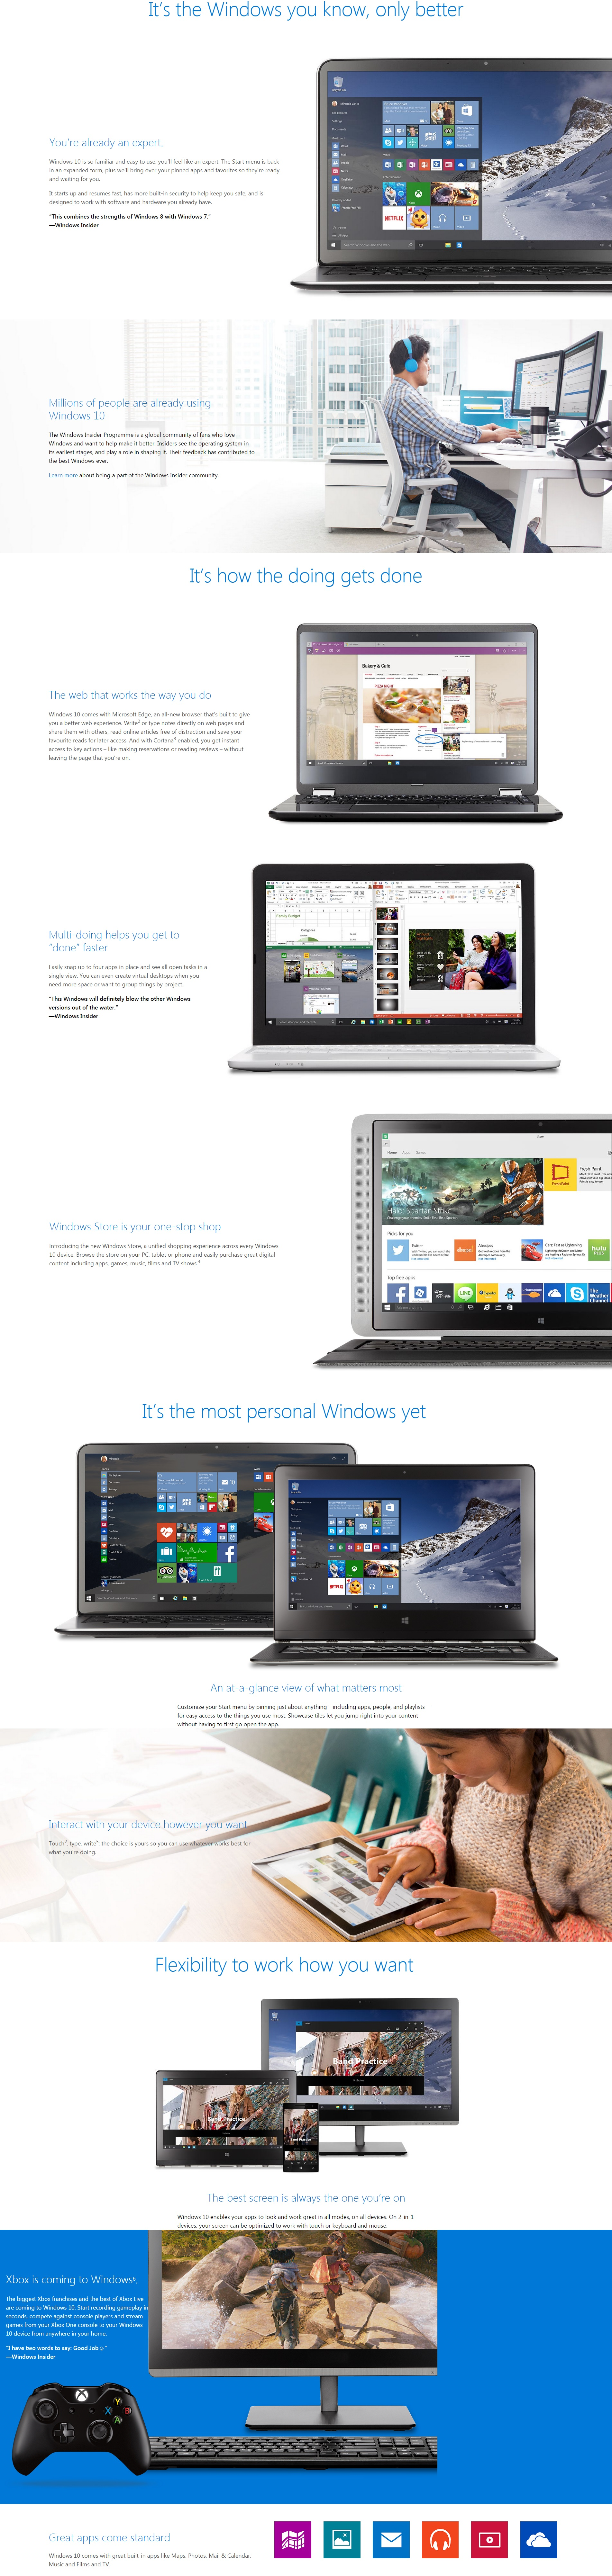 A large marketing image providing additional information about the product Microsoft Windows 10 Professional OEM 64-Bit DVD - Additional alt info not provided